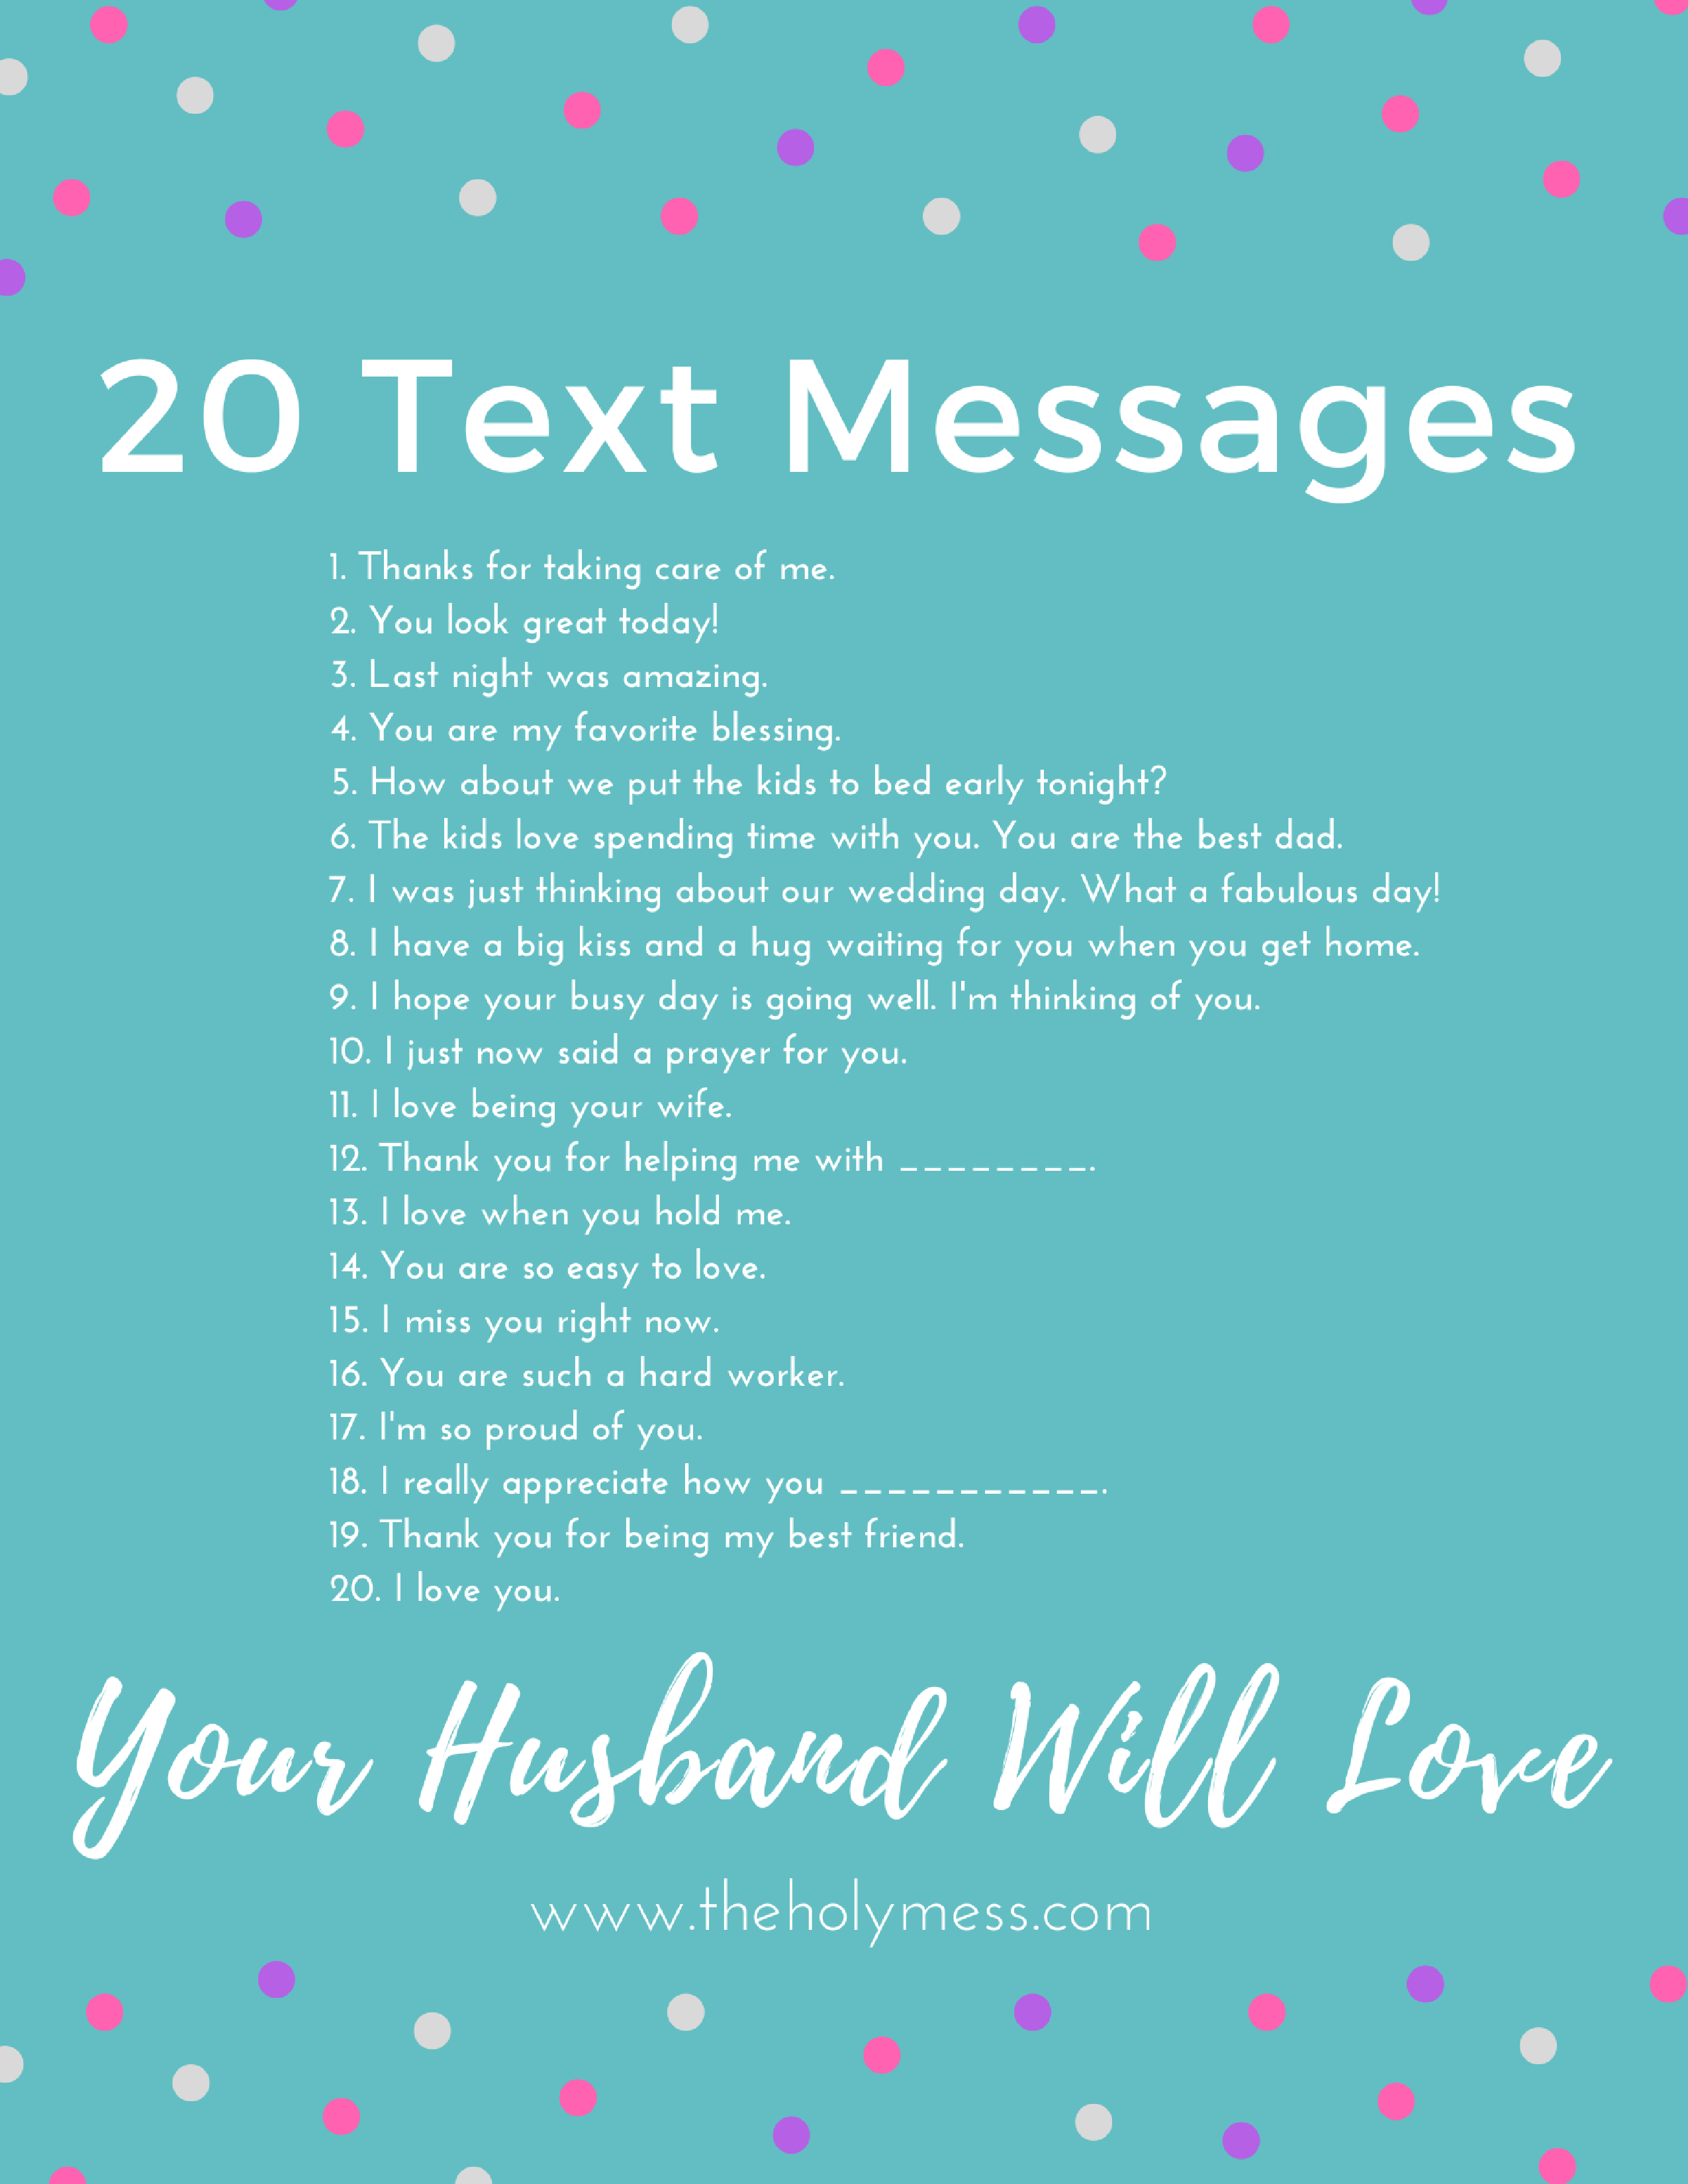 20 text messages your husband will love texts messages and 20 text messages your husband will lovethe holy mess buycottarizona Image collections